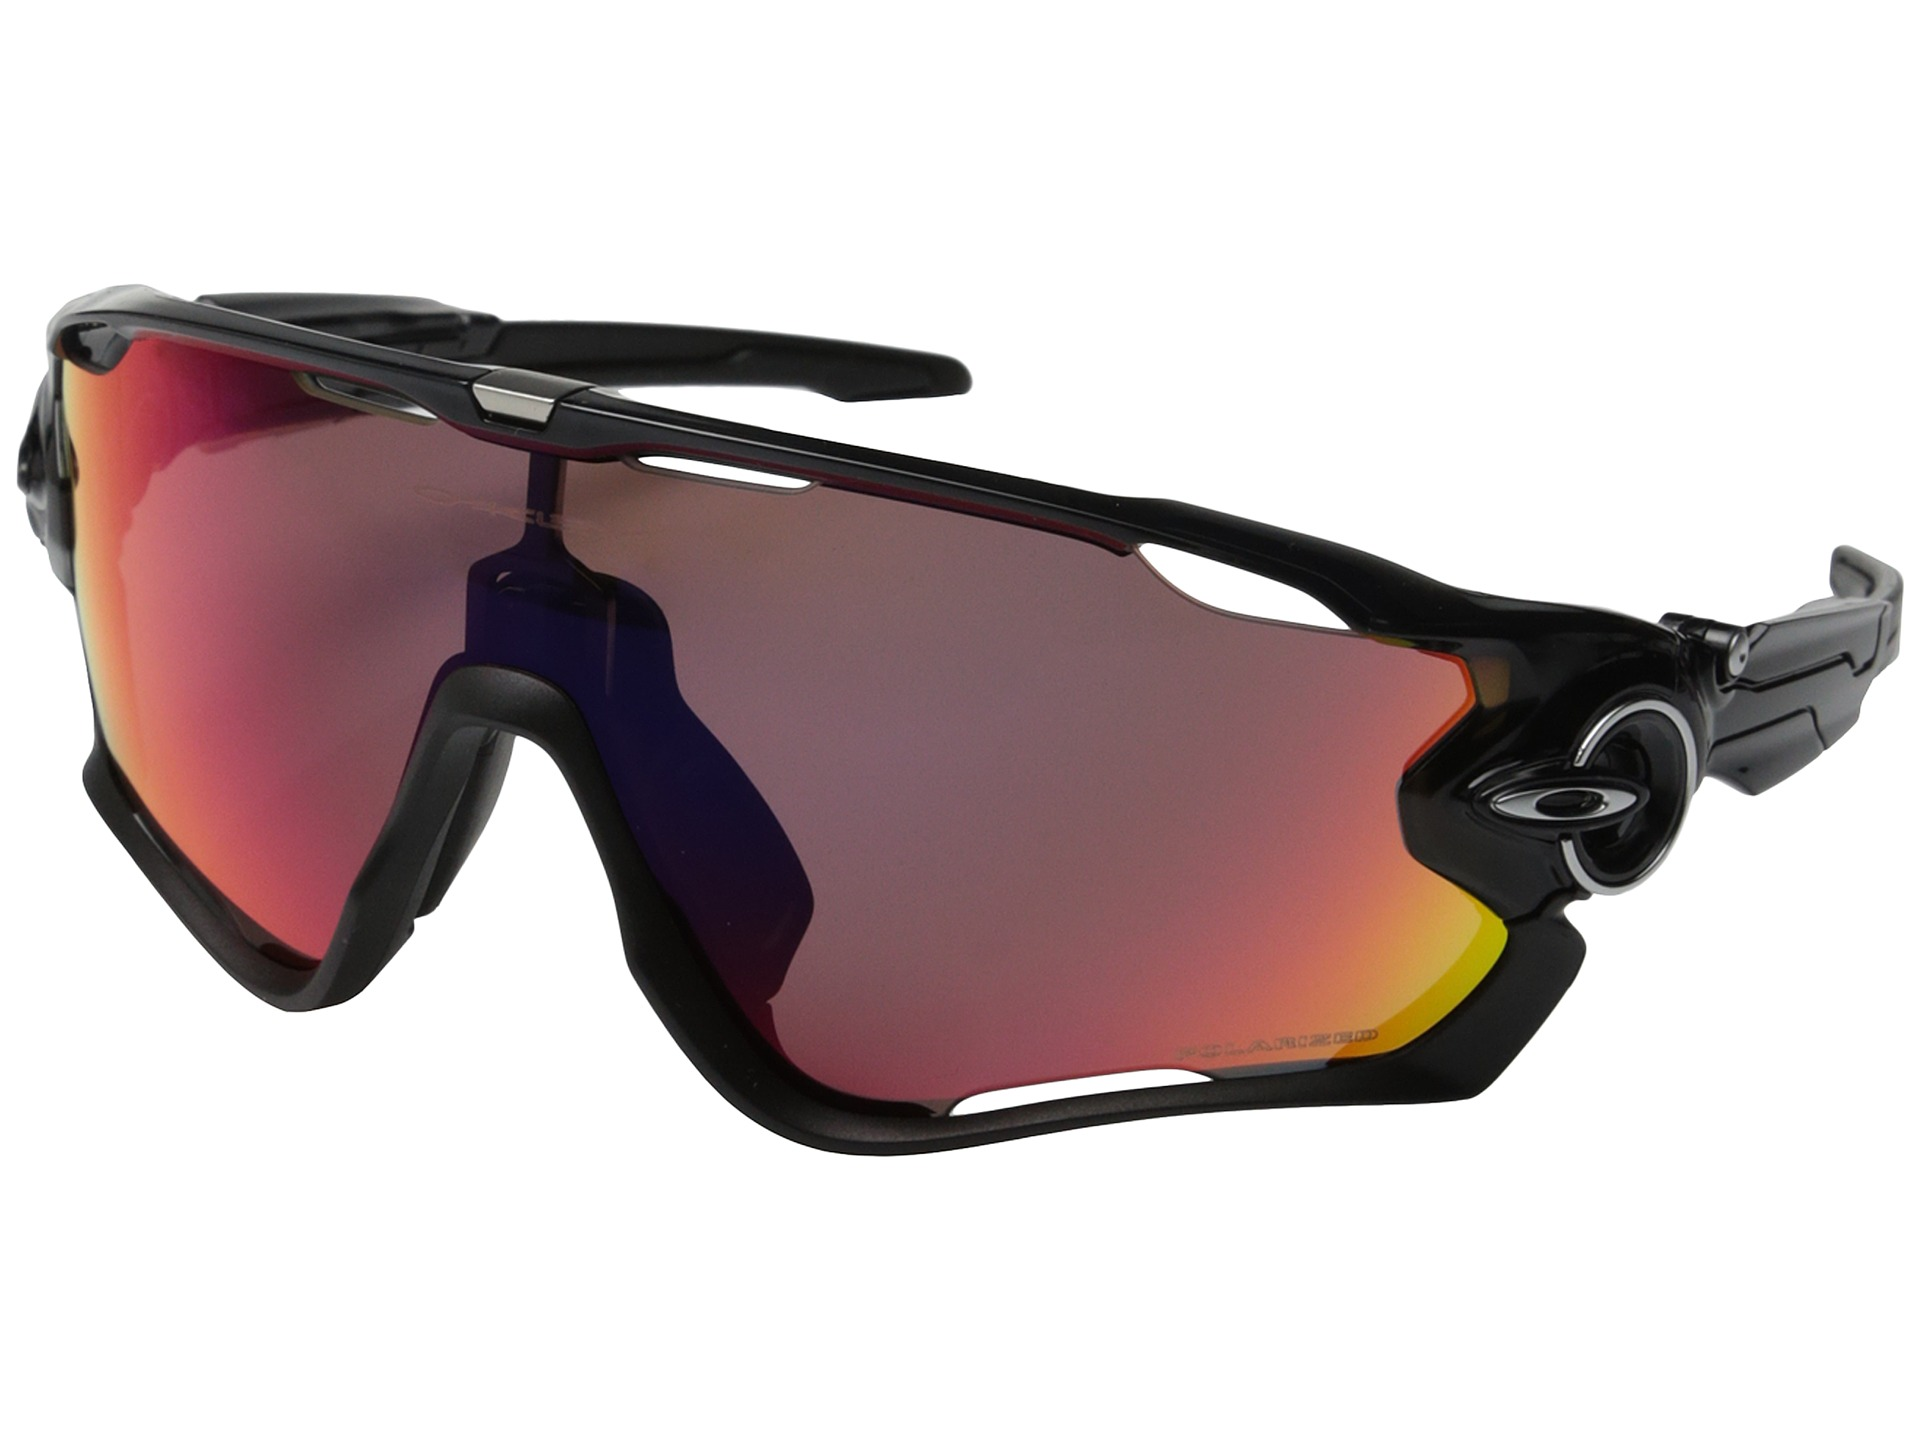 2d4f8c05ce4d1 Which Oakley Glasses Can U Change The Os   United Nations System ...